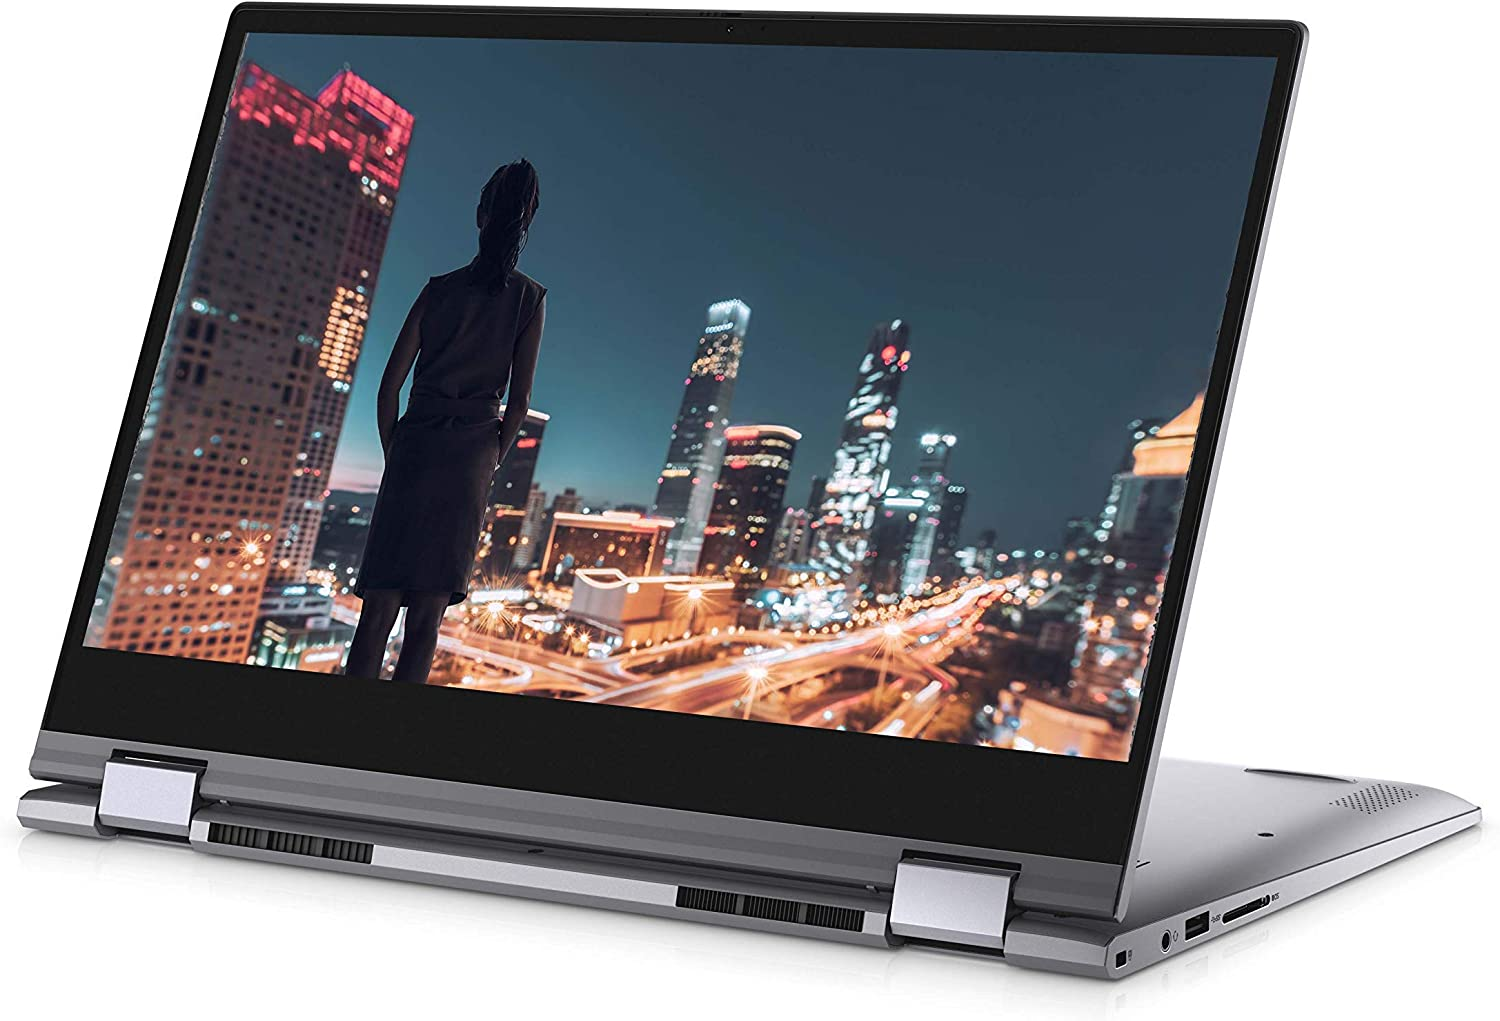 2021 Flagship Dell Inspiron 14 5000 2 in 1 Laptop 14